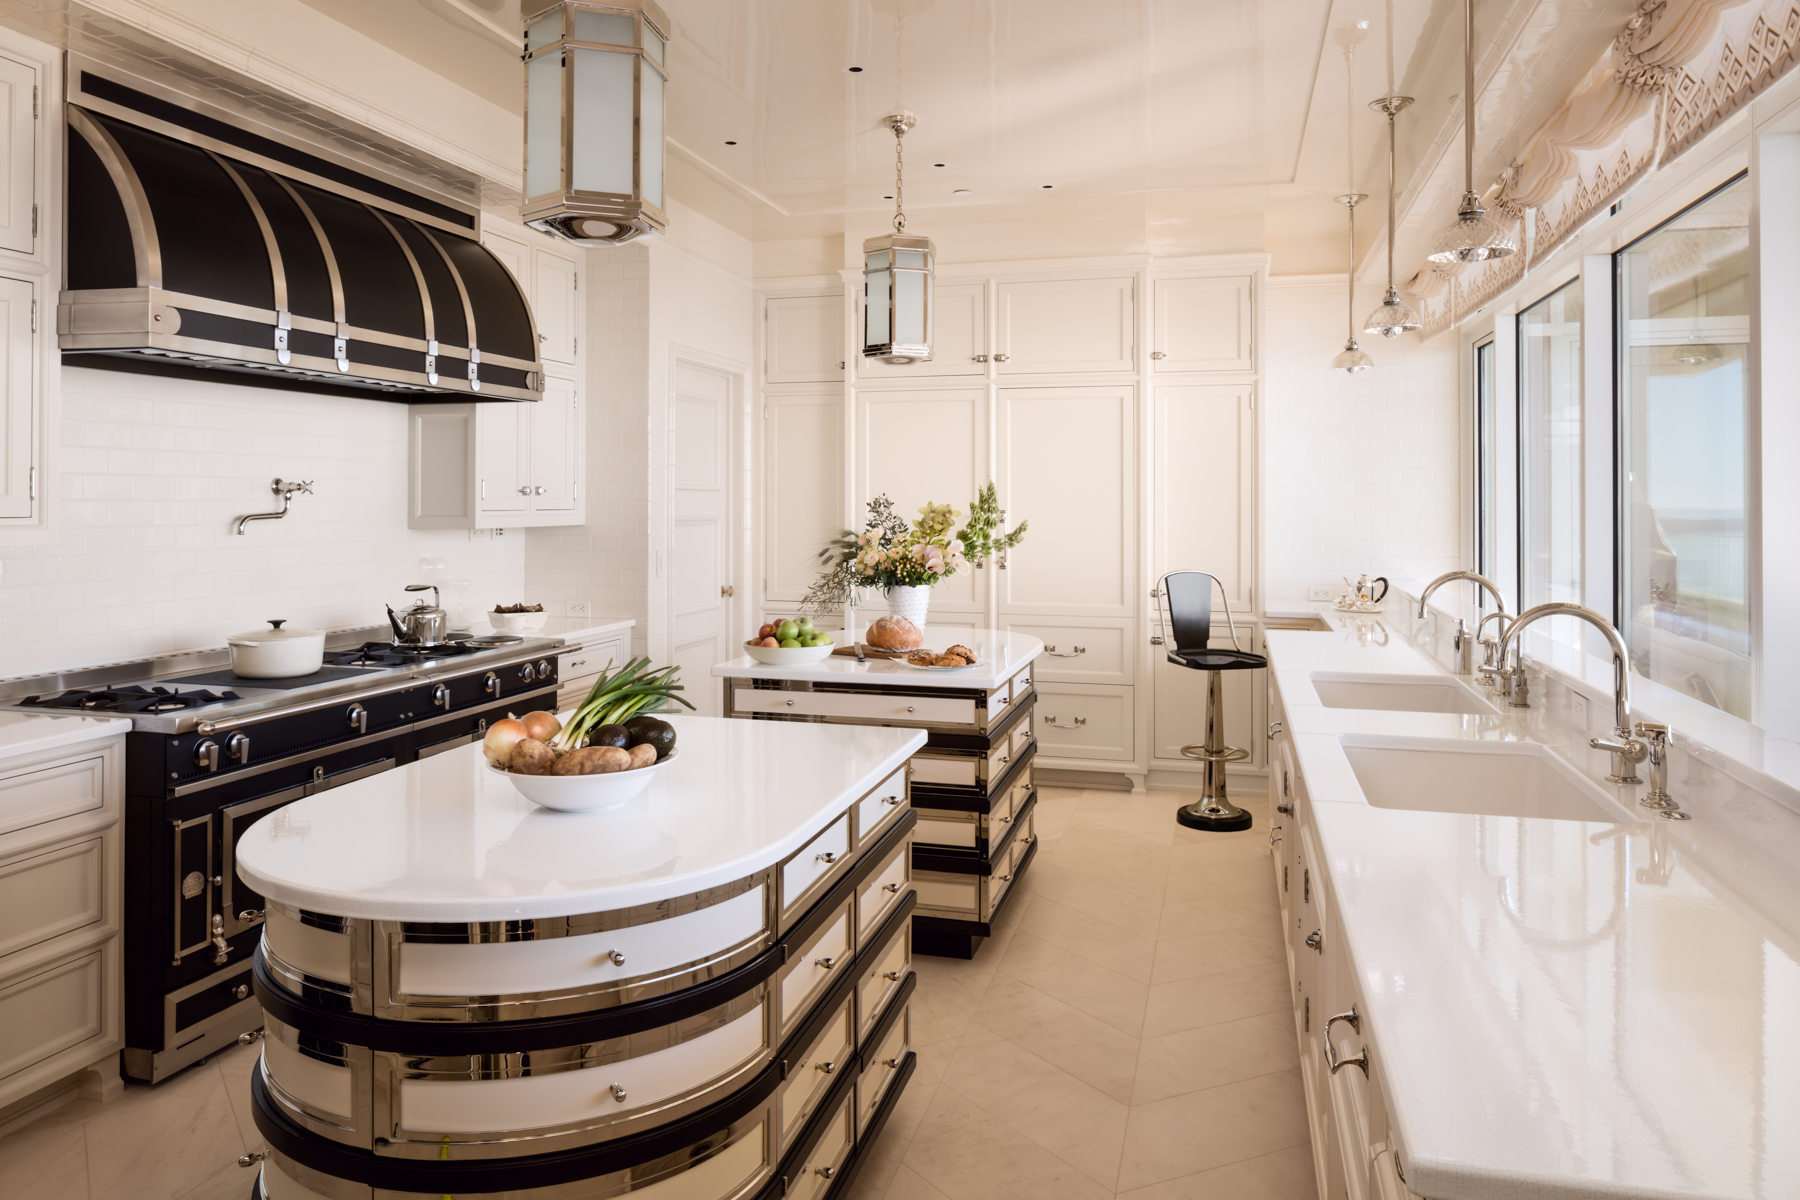 Downtown high-rise, two-story penthouse sleek kitchen with a view by Wade Weissmann Architecture Inc.